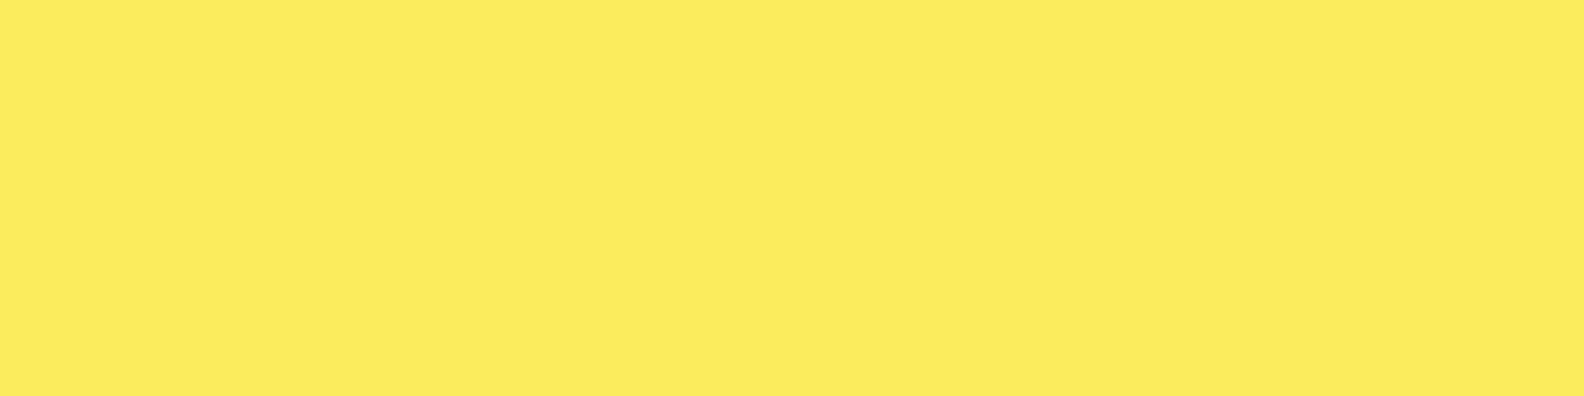 1584x396 Maize Solid Color Background